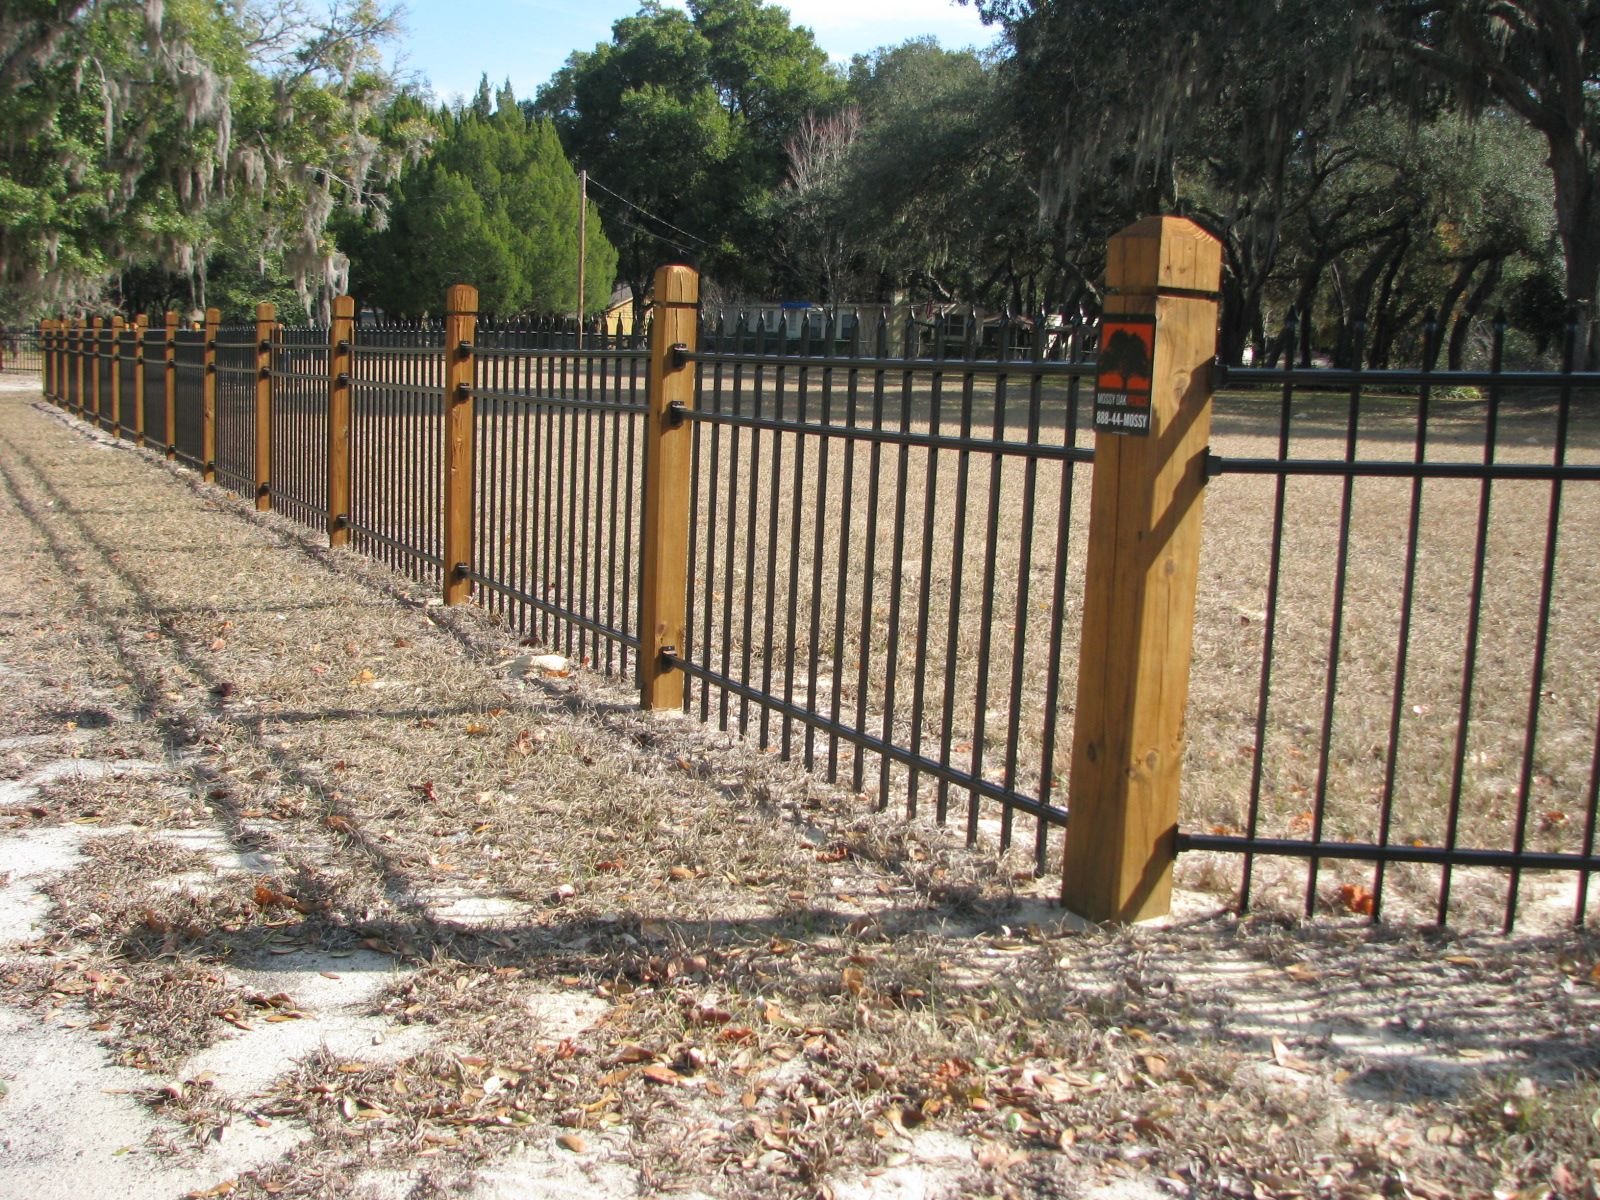 Specialty Fence Design By Mossy Oak Fence Company In Orlando And Melbourne Fl Wood Stained Posts Aluminum F Fence Design Building A Fence Fence Around Pool